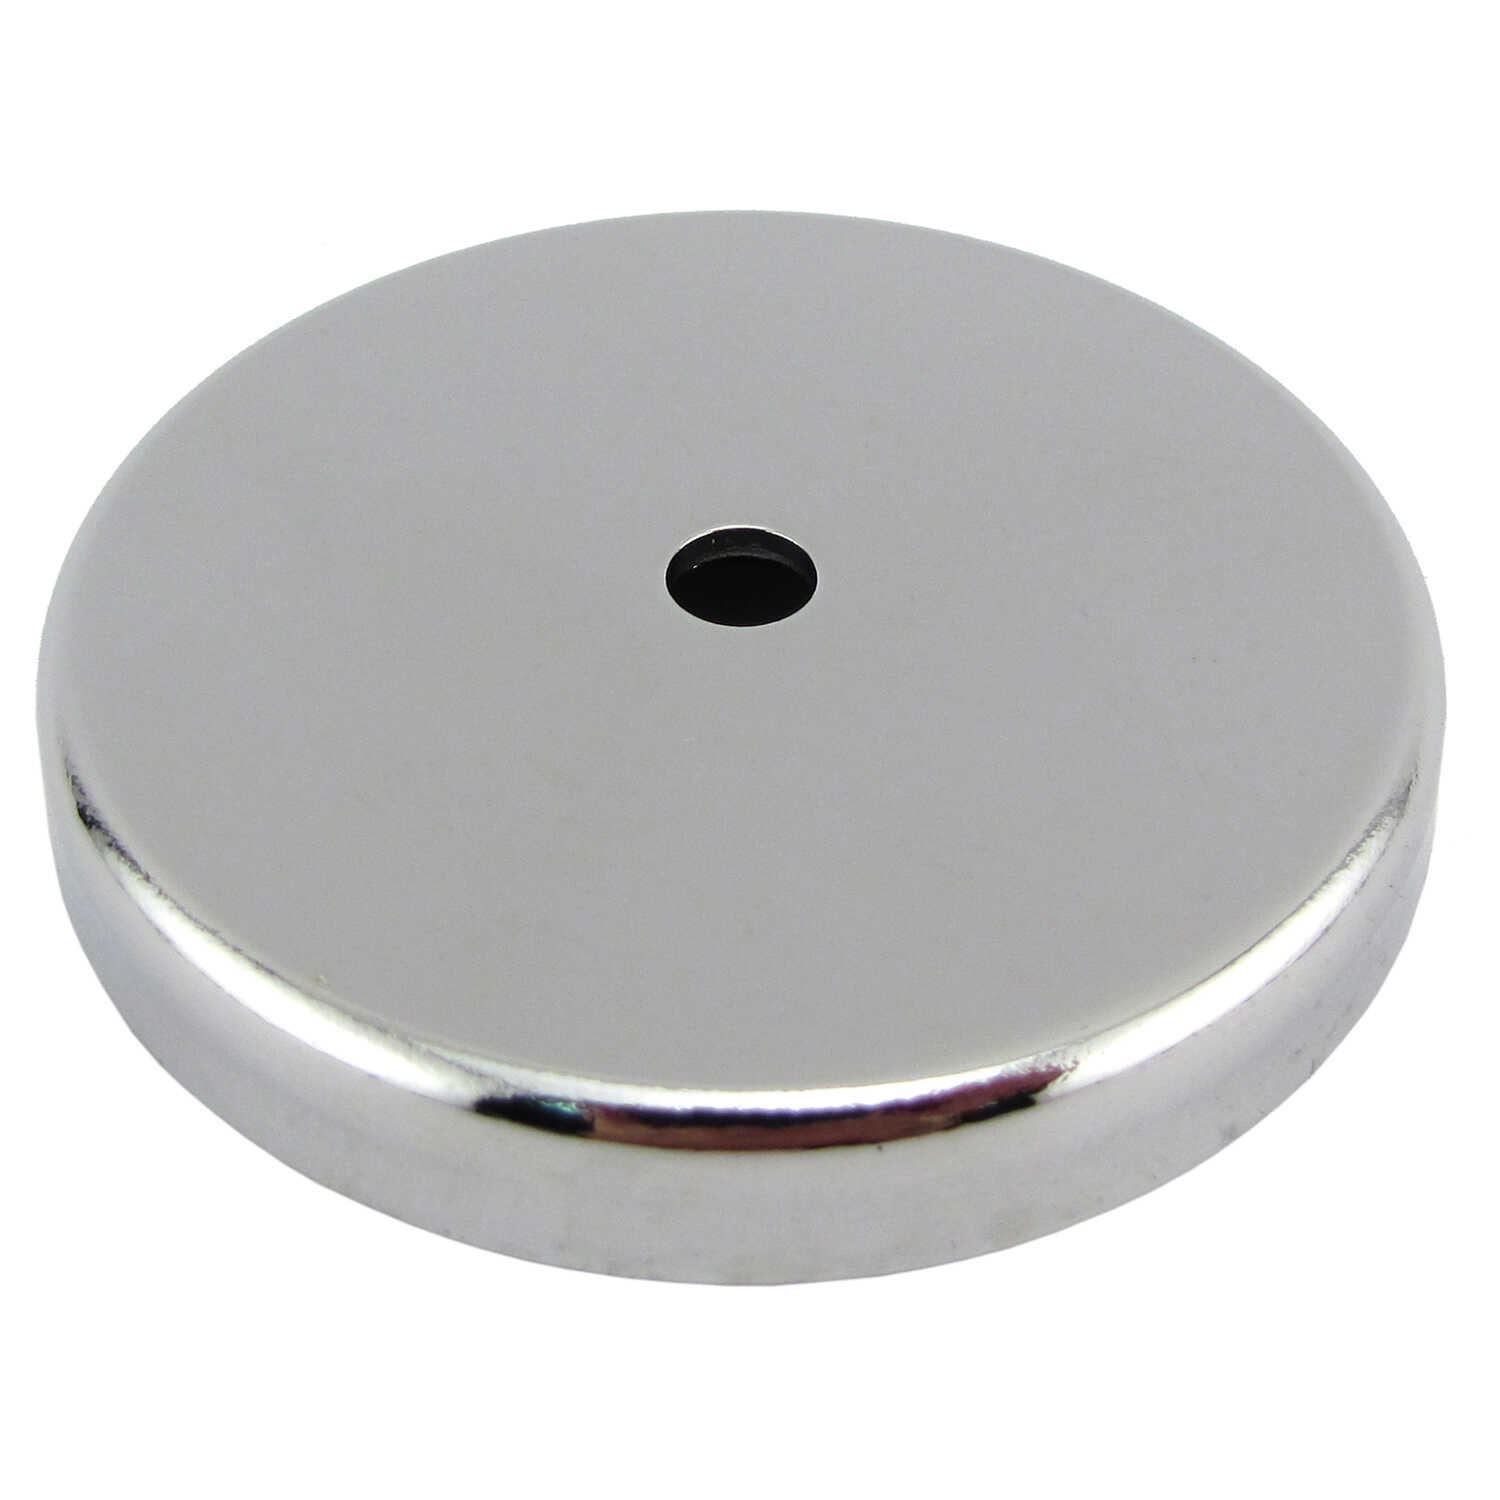 Master Magnetics  .375 in. Ceramic  Round Base Magnet  65 lb. pull 3.4 MGOe Silver  1 pc.